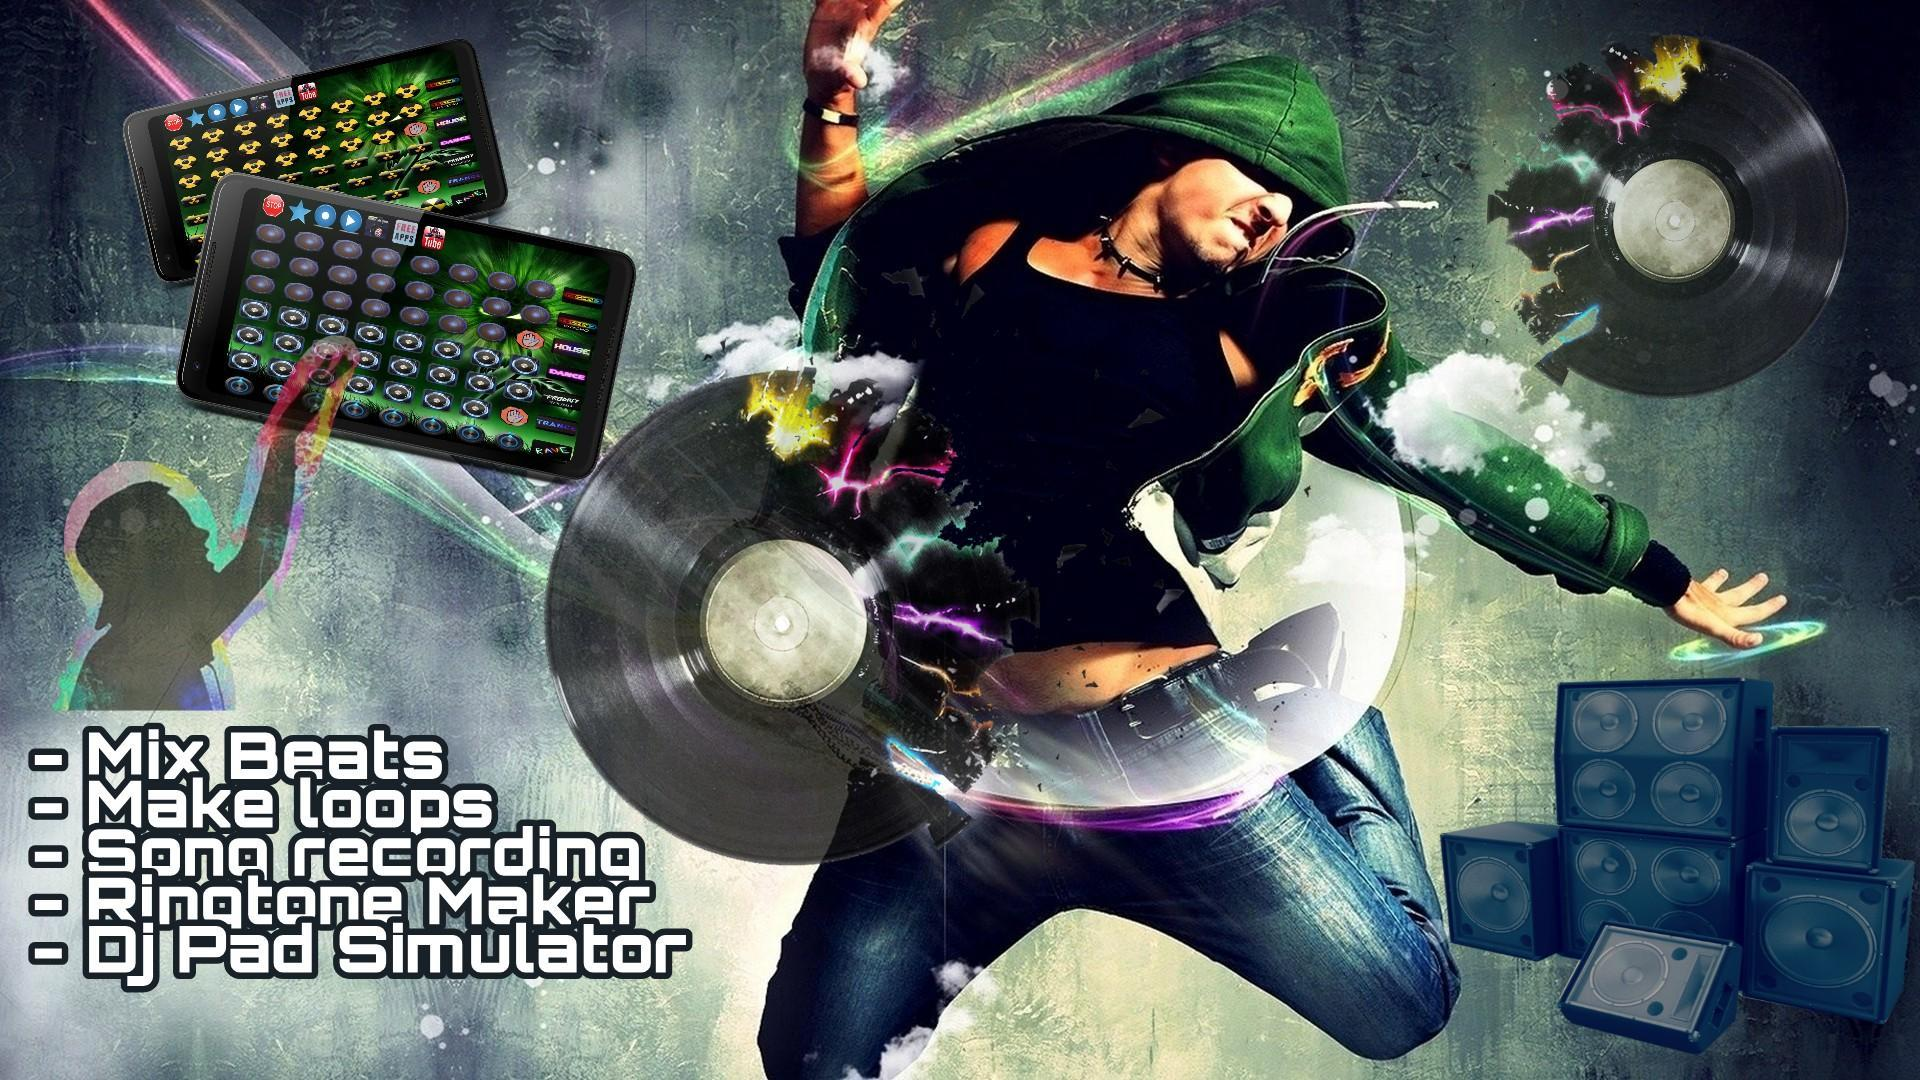 Electro Dj beat mixer for Android - APK Download